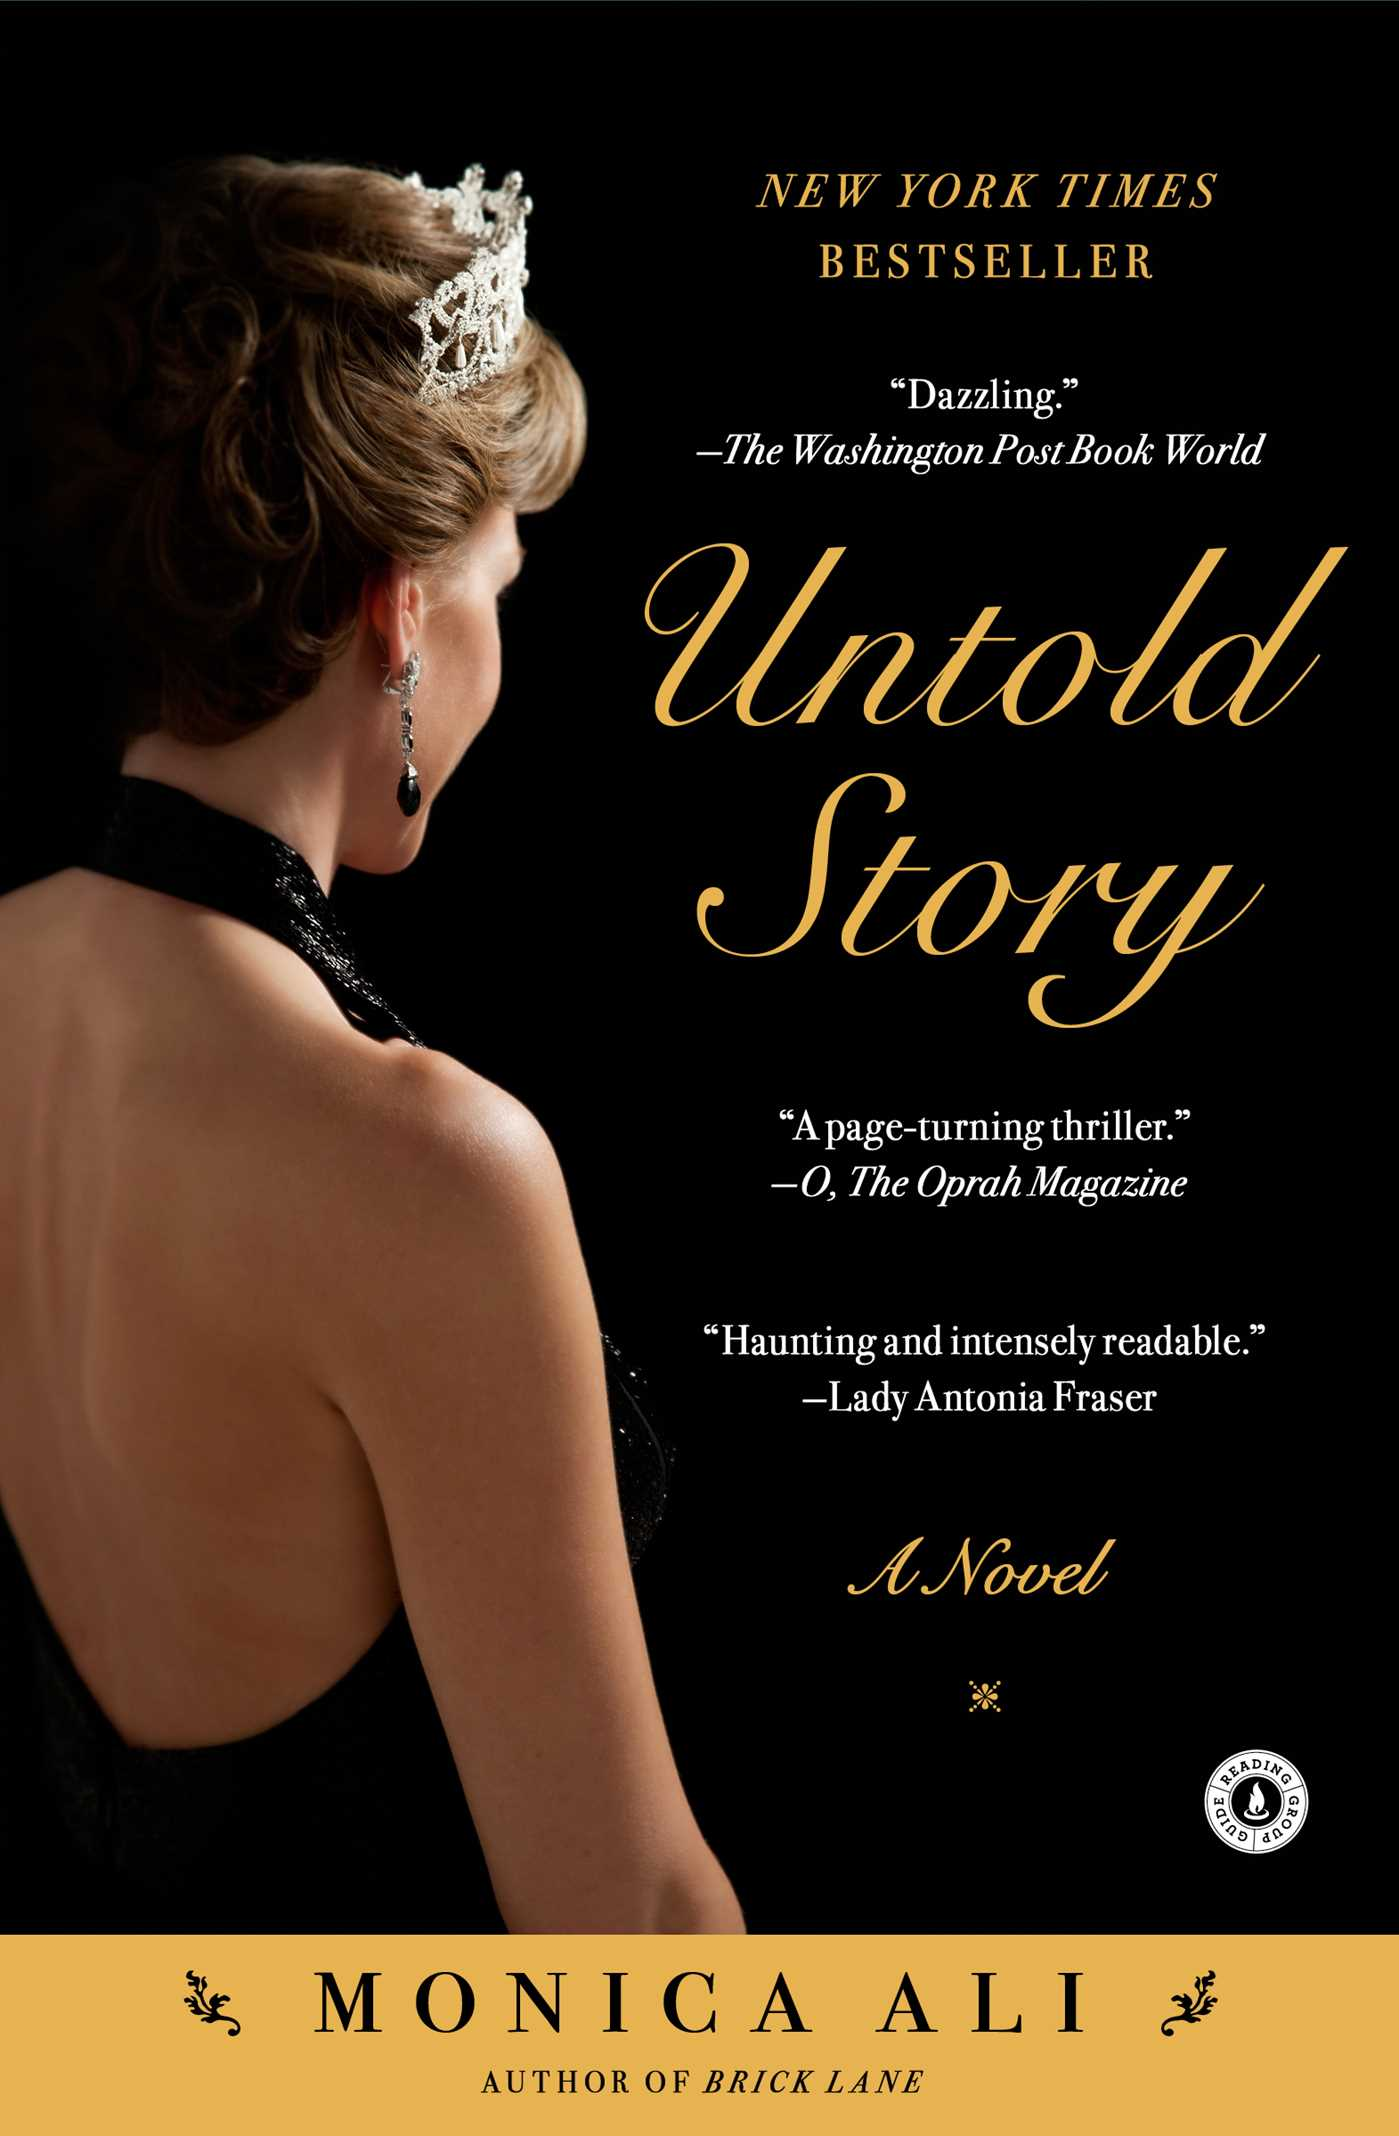 Book Cover Image (jpg): Untold Story Ebook 9781451635515